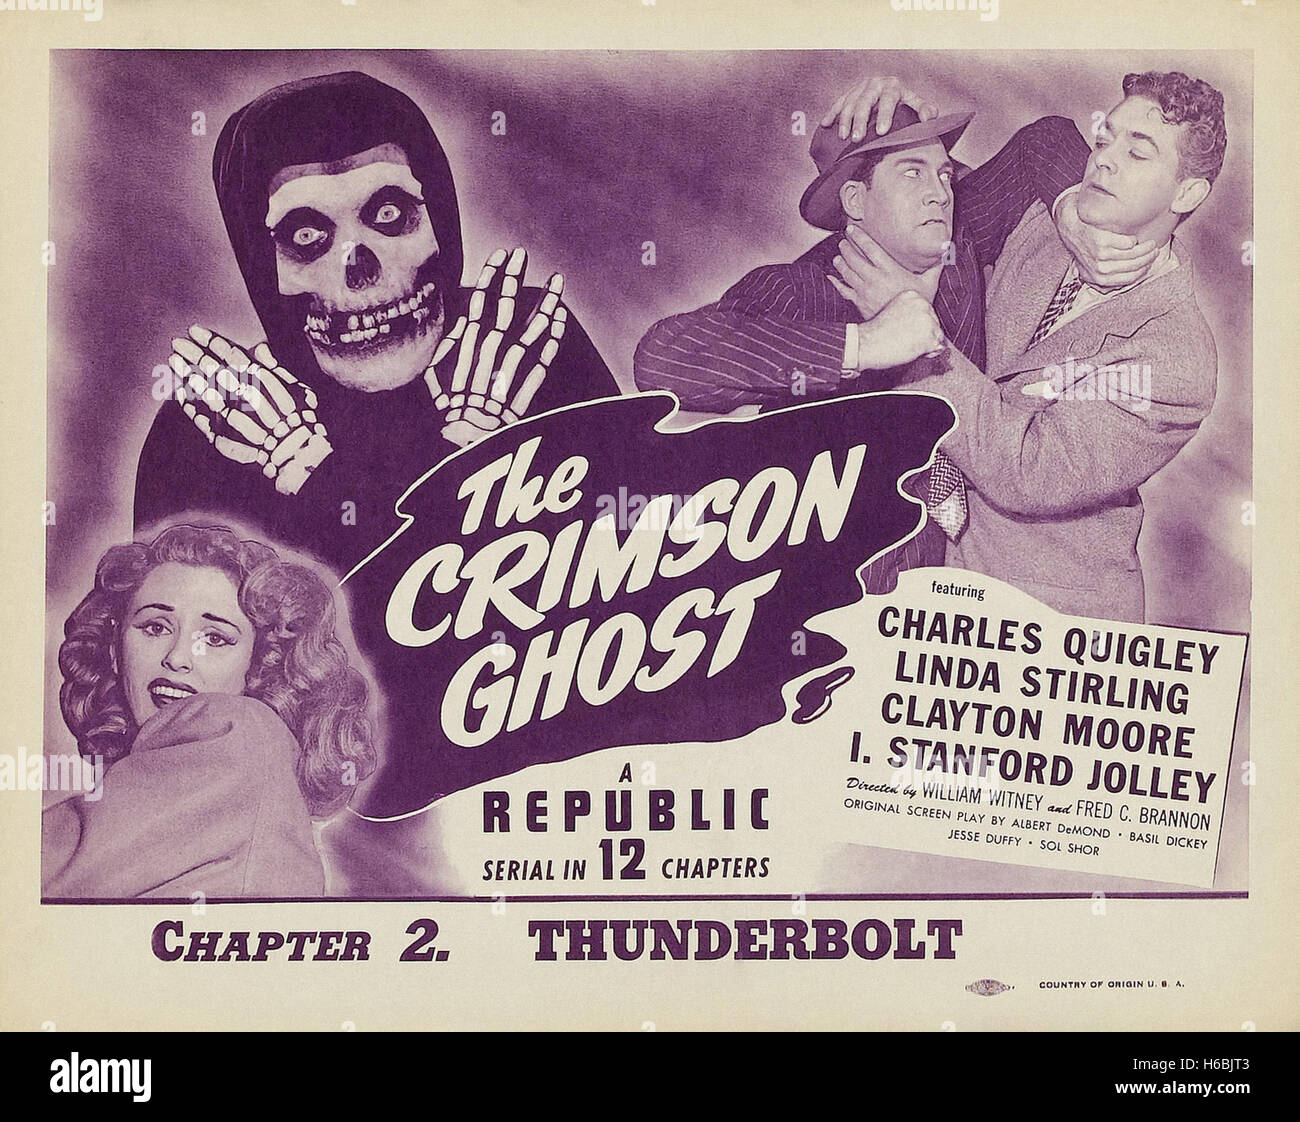 The Crimson Ghost  - Movie Poster - - Stock Image